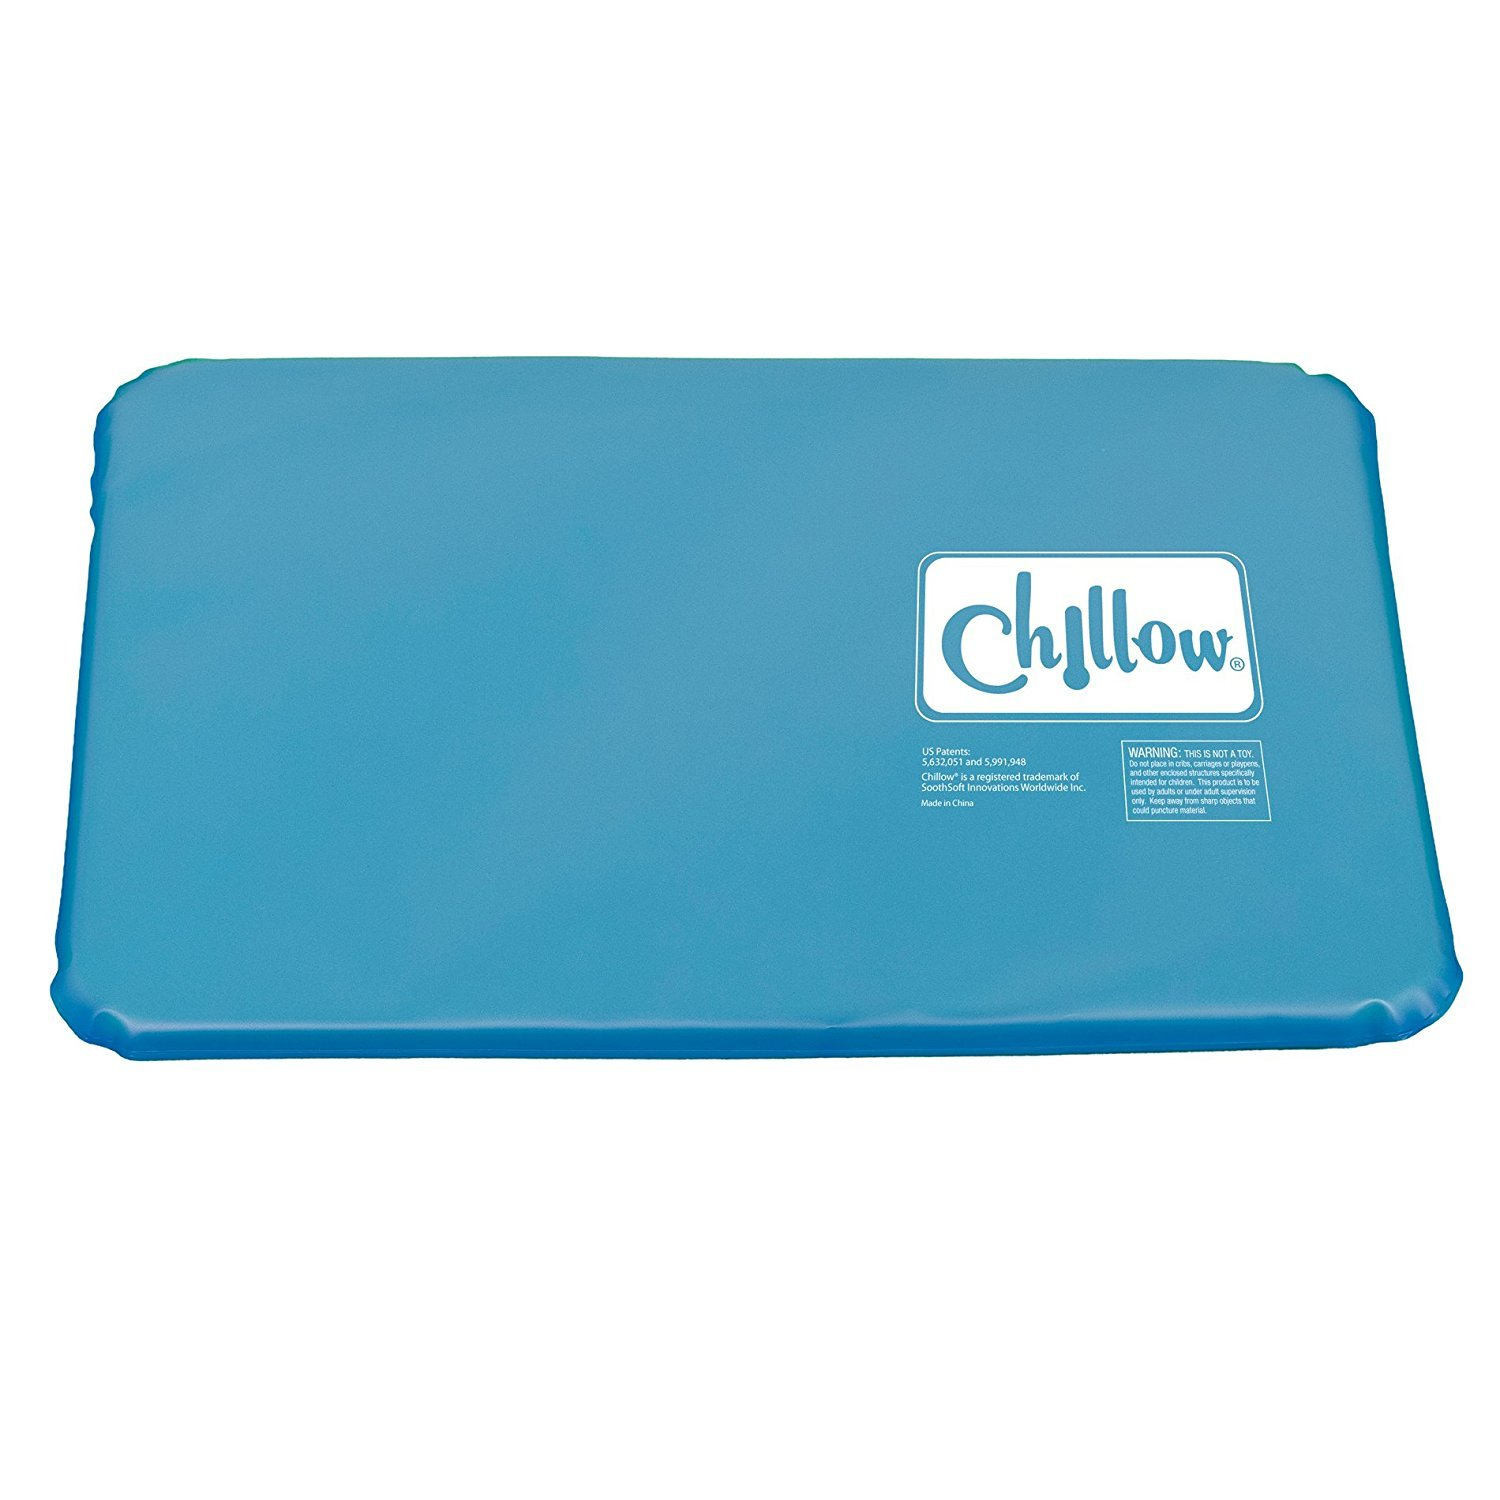 Tiangtech Chillow Multi Functional Water Pillow Massage Mat Cooling Pillow Pad Reduces Hot Flashes, Neck Pain, Fevers and More